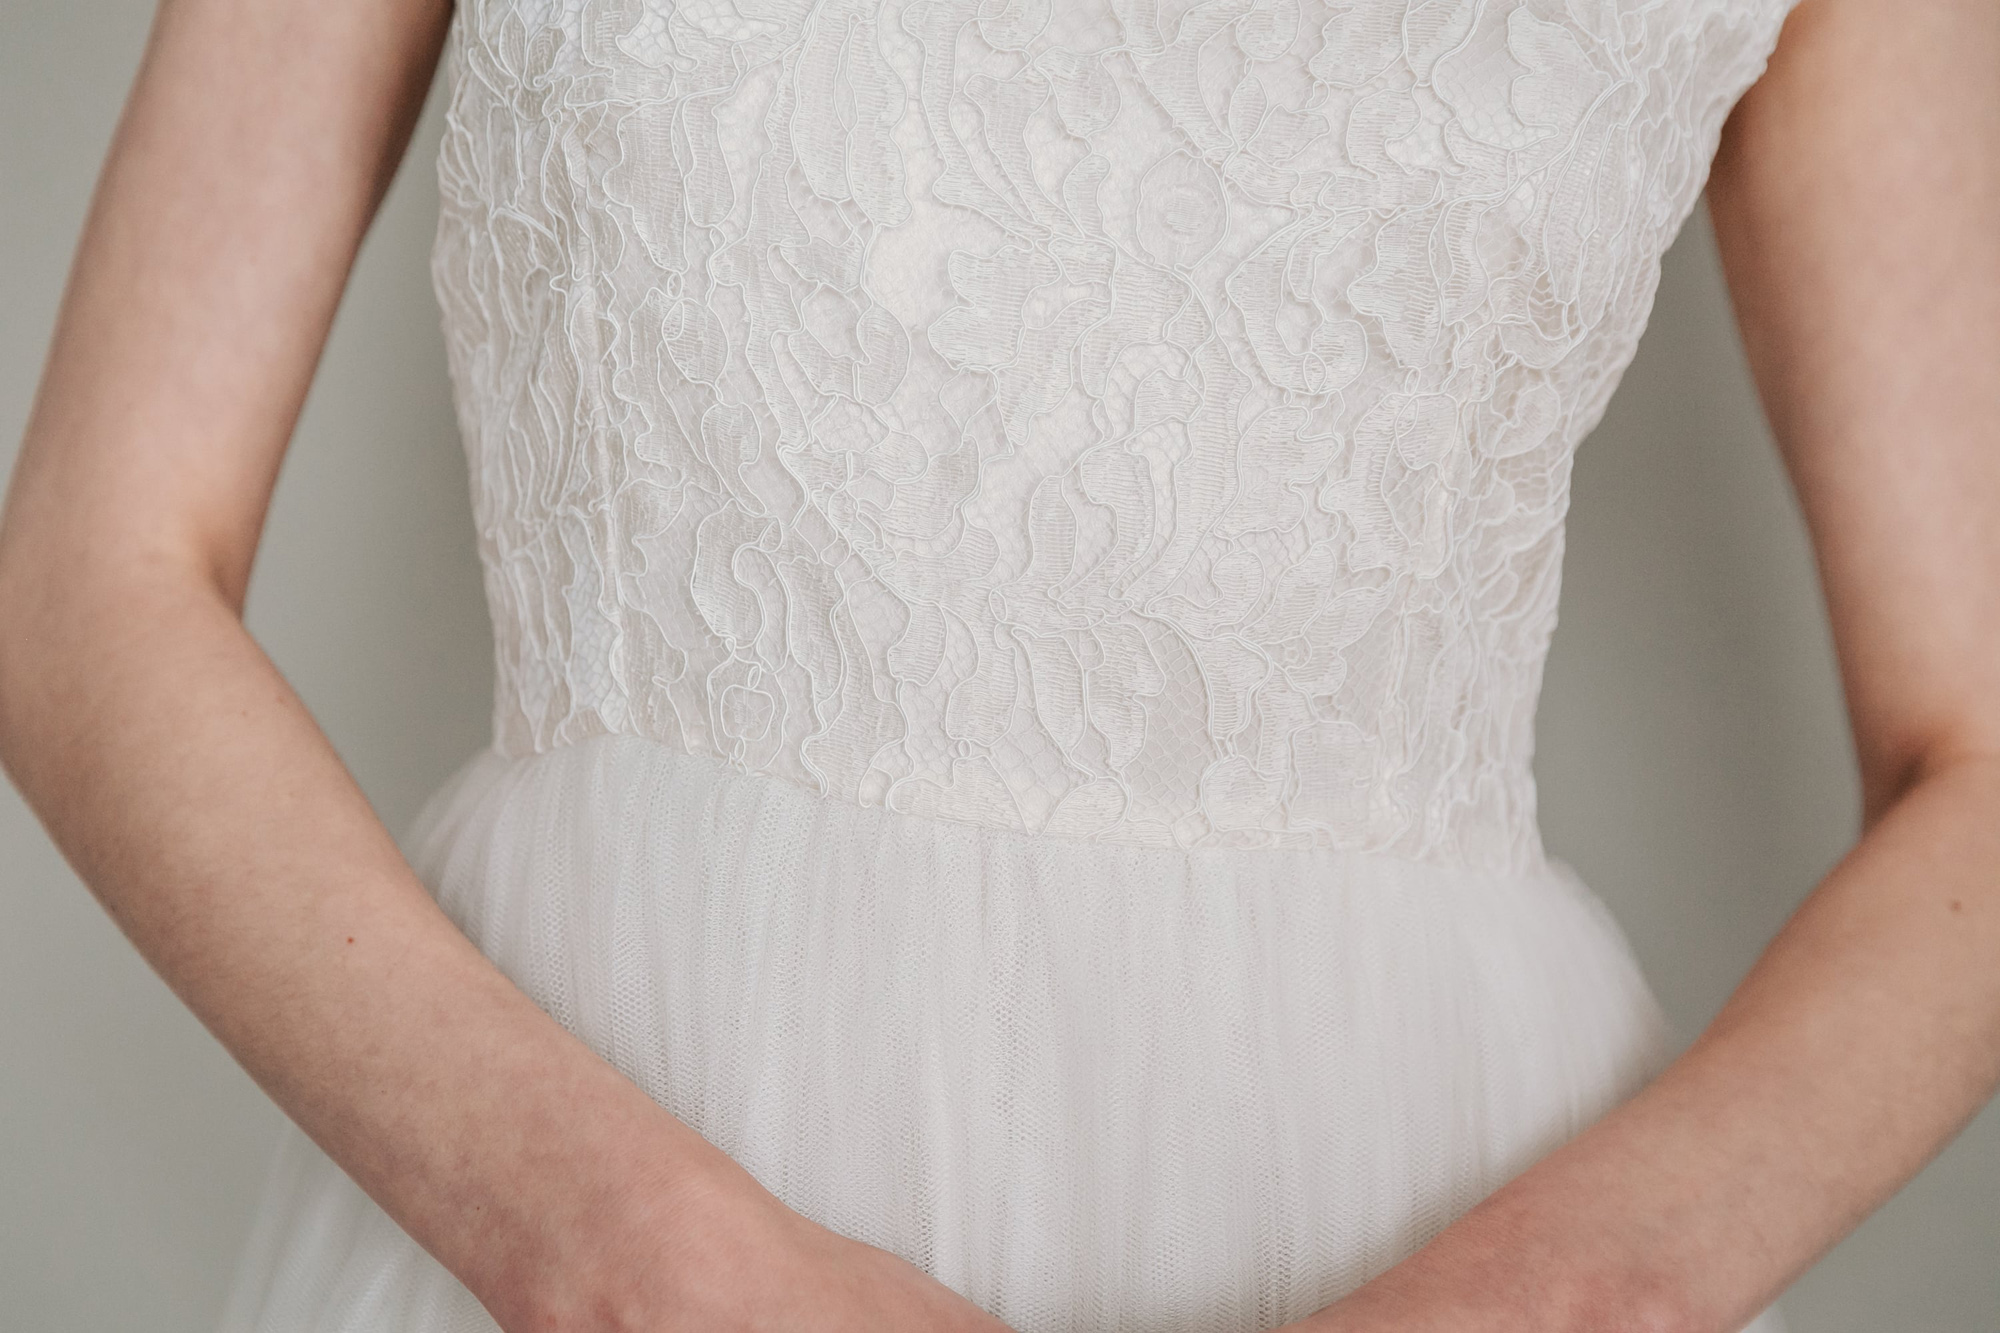 Kate-Beaumont-Sheffield-Mimosa-Lace-Tulle-Bohemian-Wedding-Gown-4.jpg